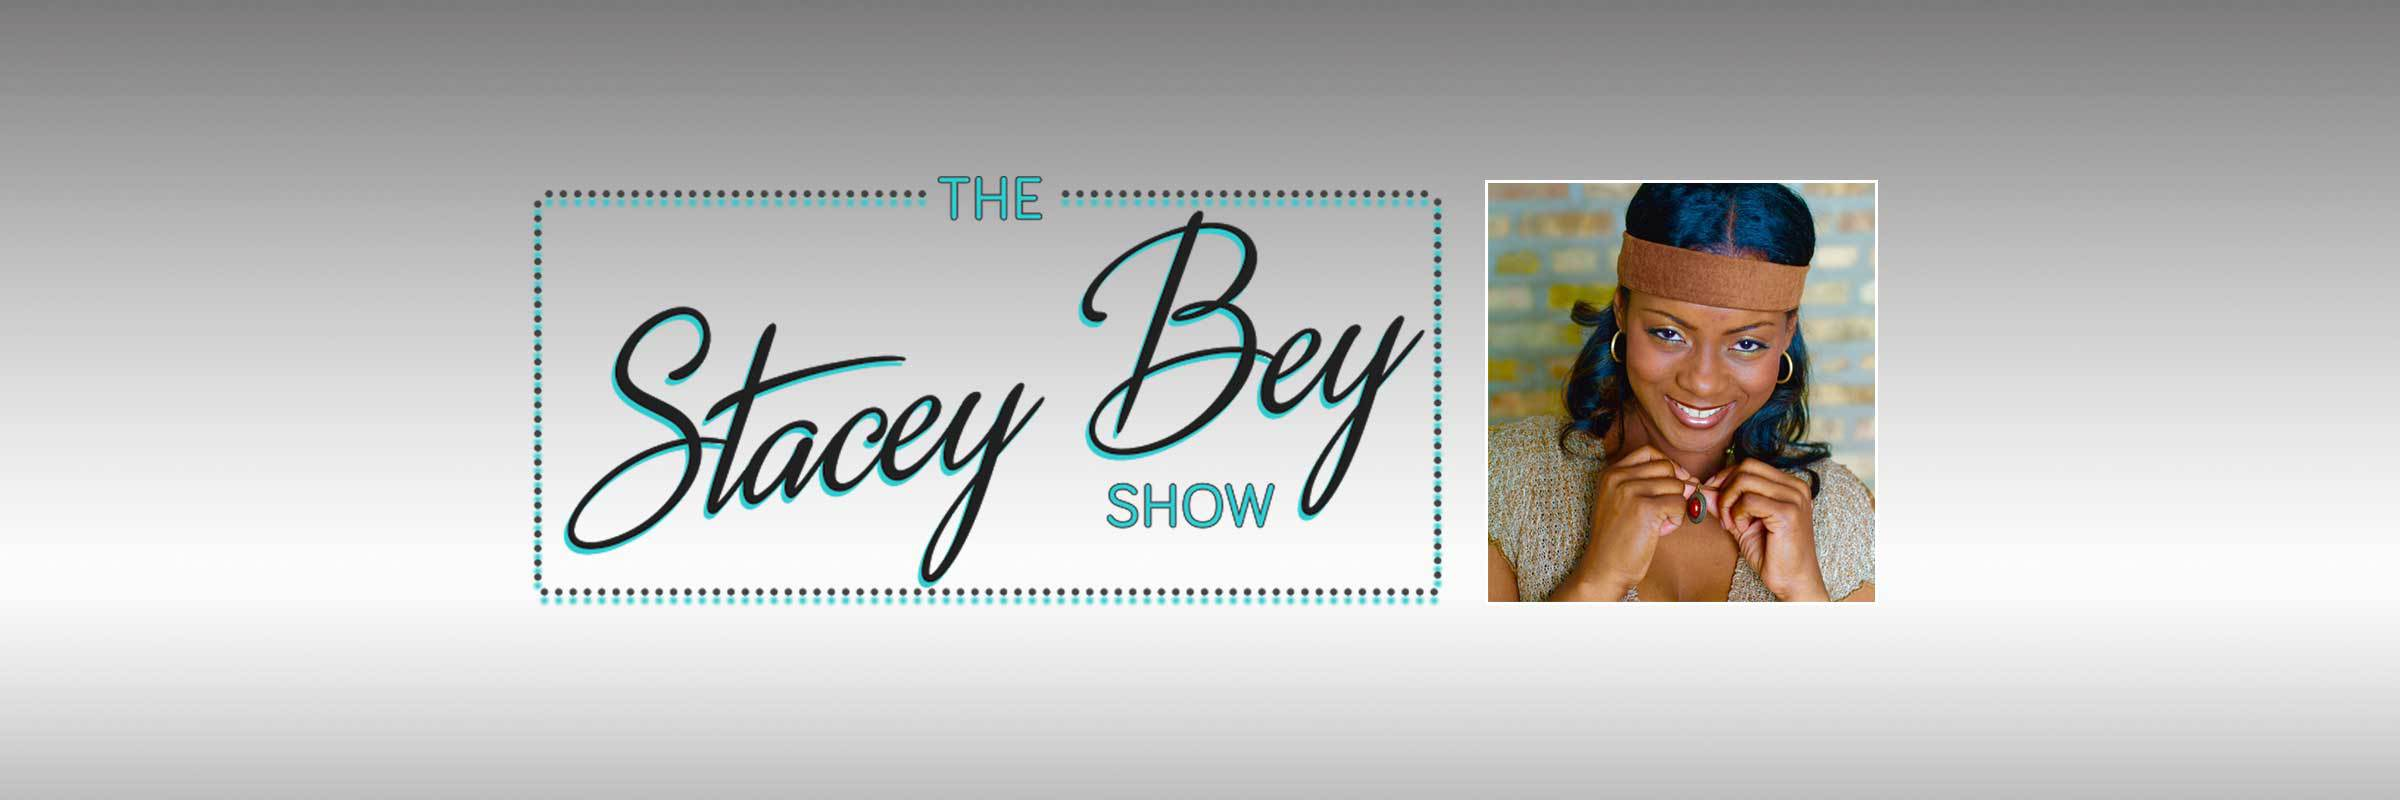 The Stacey Bey Show